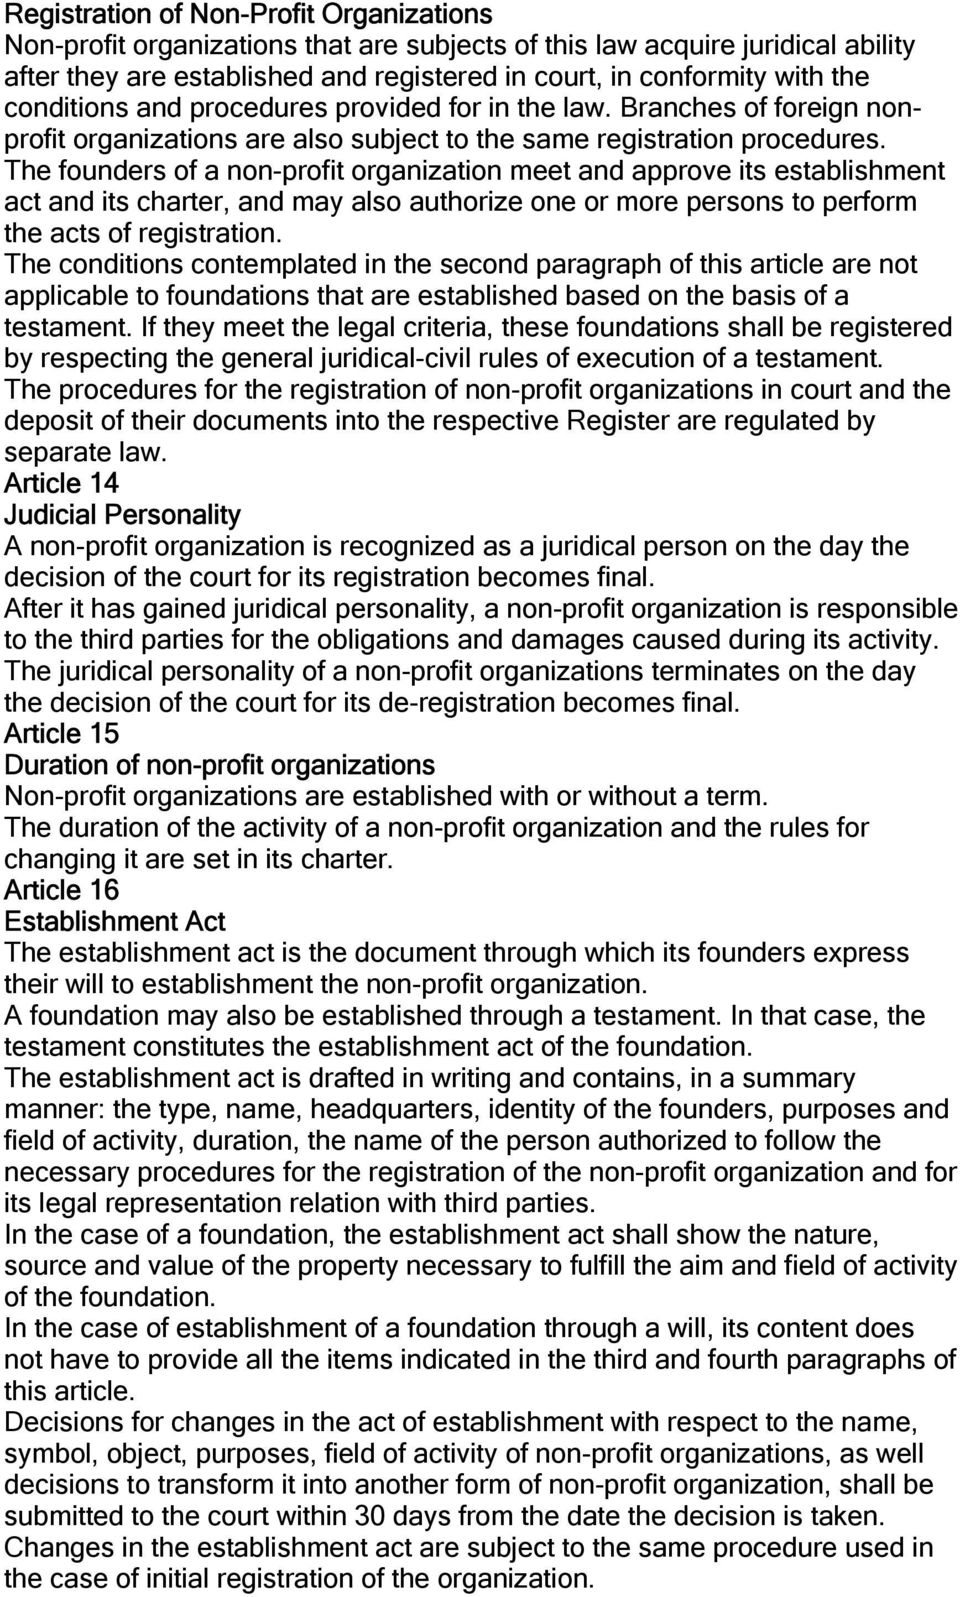 The founders of a non-profit organization meet and approve its establishment act and its charter, and may also authorize one or more persons to perform the acts of registration.